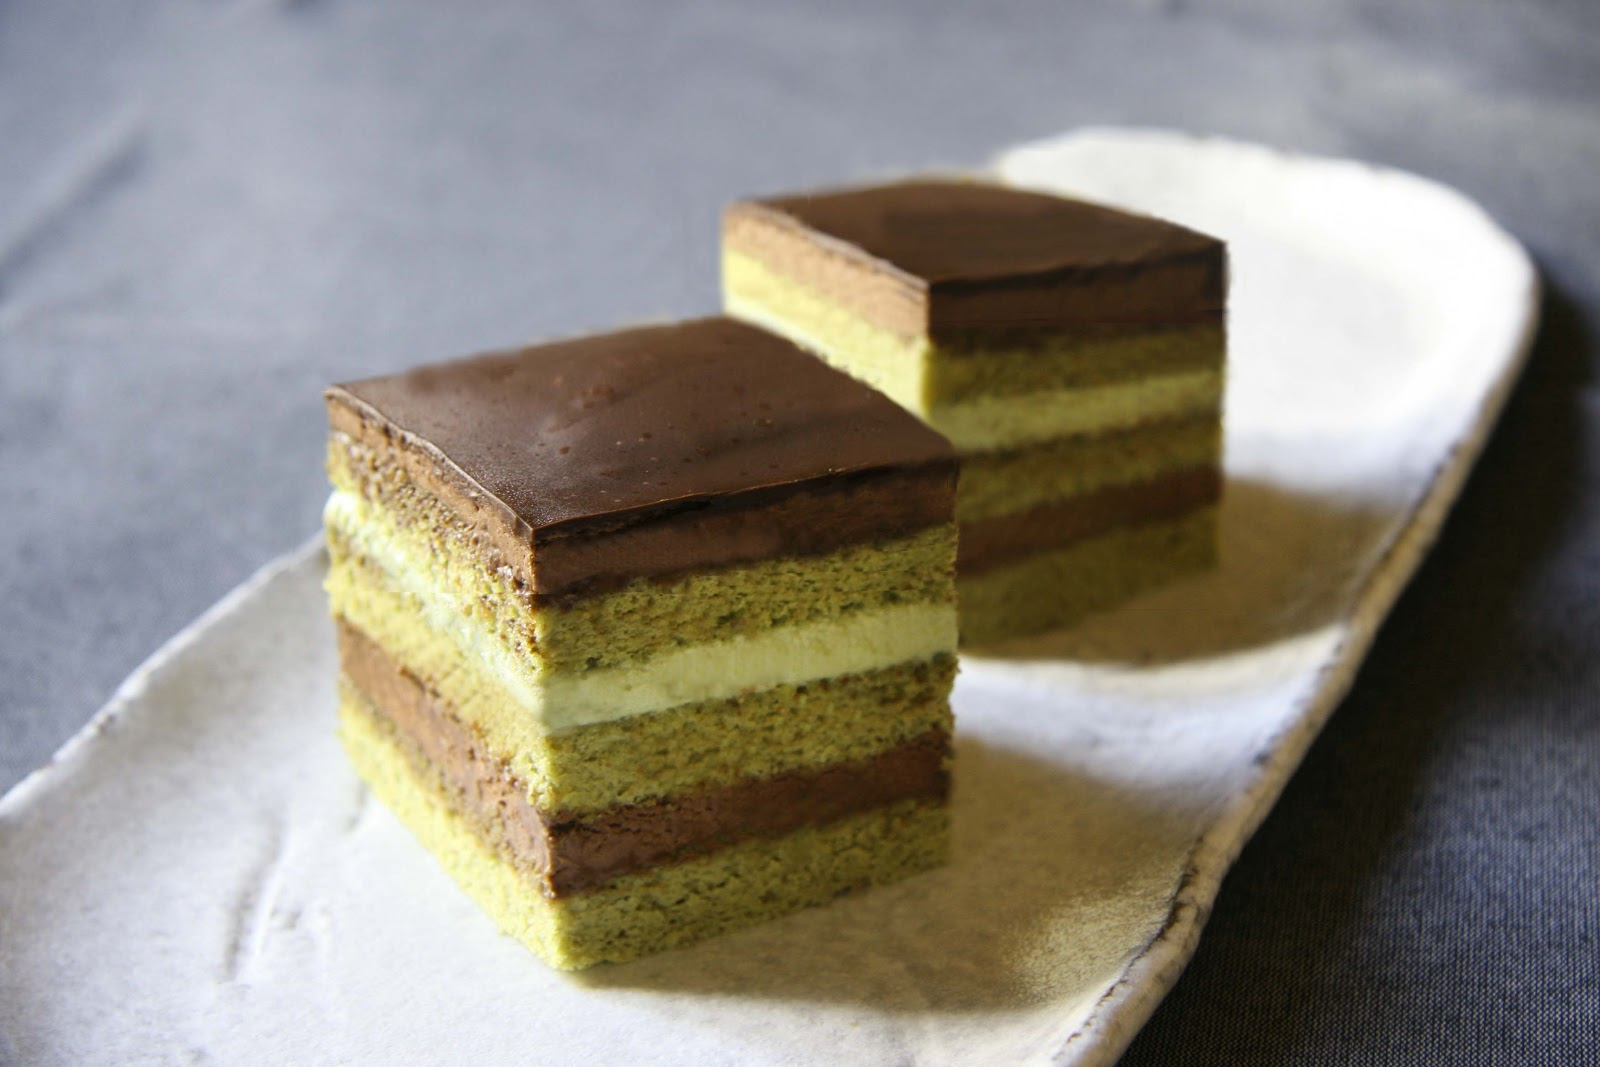 Chocolate Cake Recipe Japanese: COOKING WITH JAPANESE GREEN TEA: Matcha Opera Cake